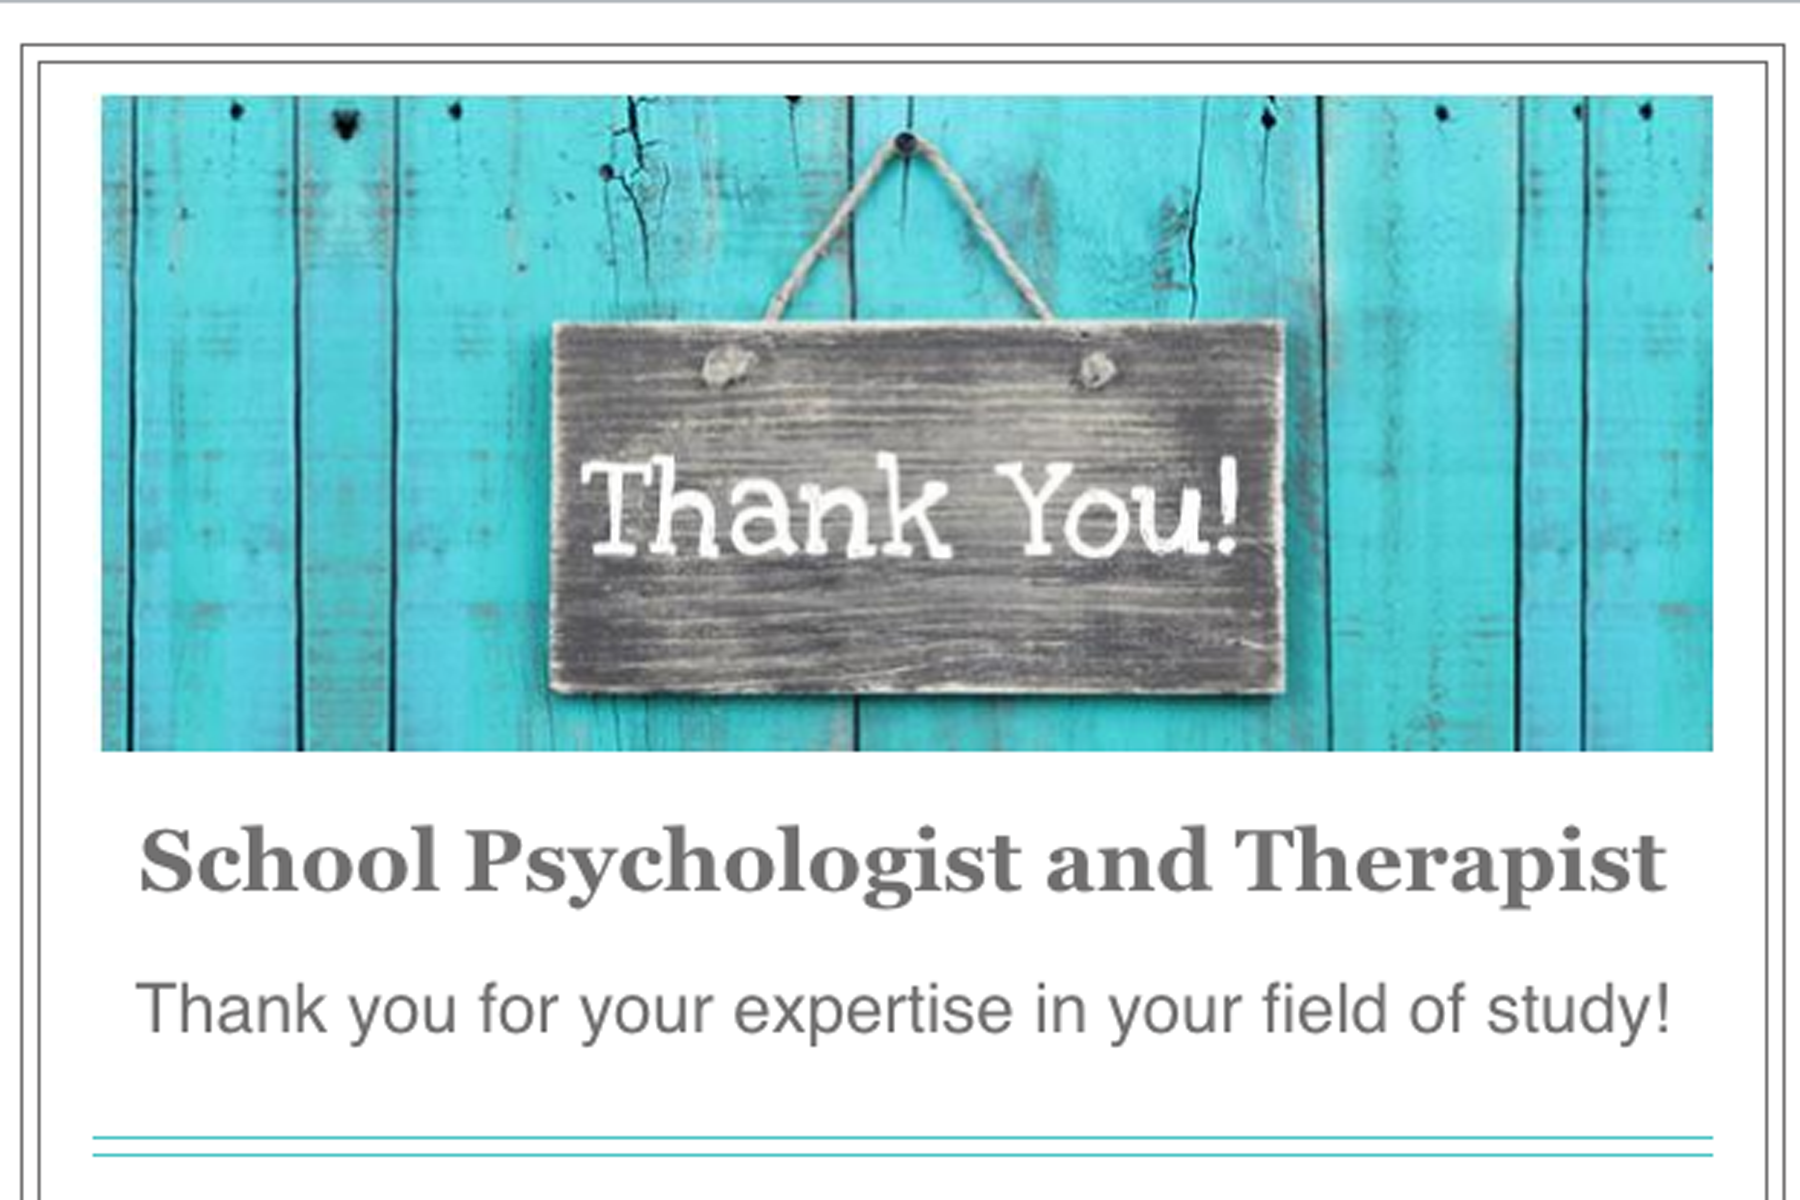 Thank you to our school psychologist and therapist